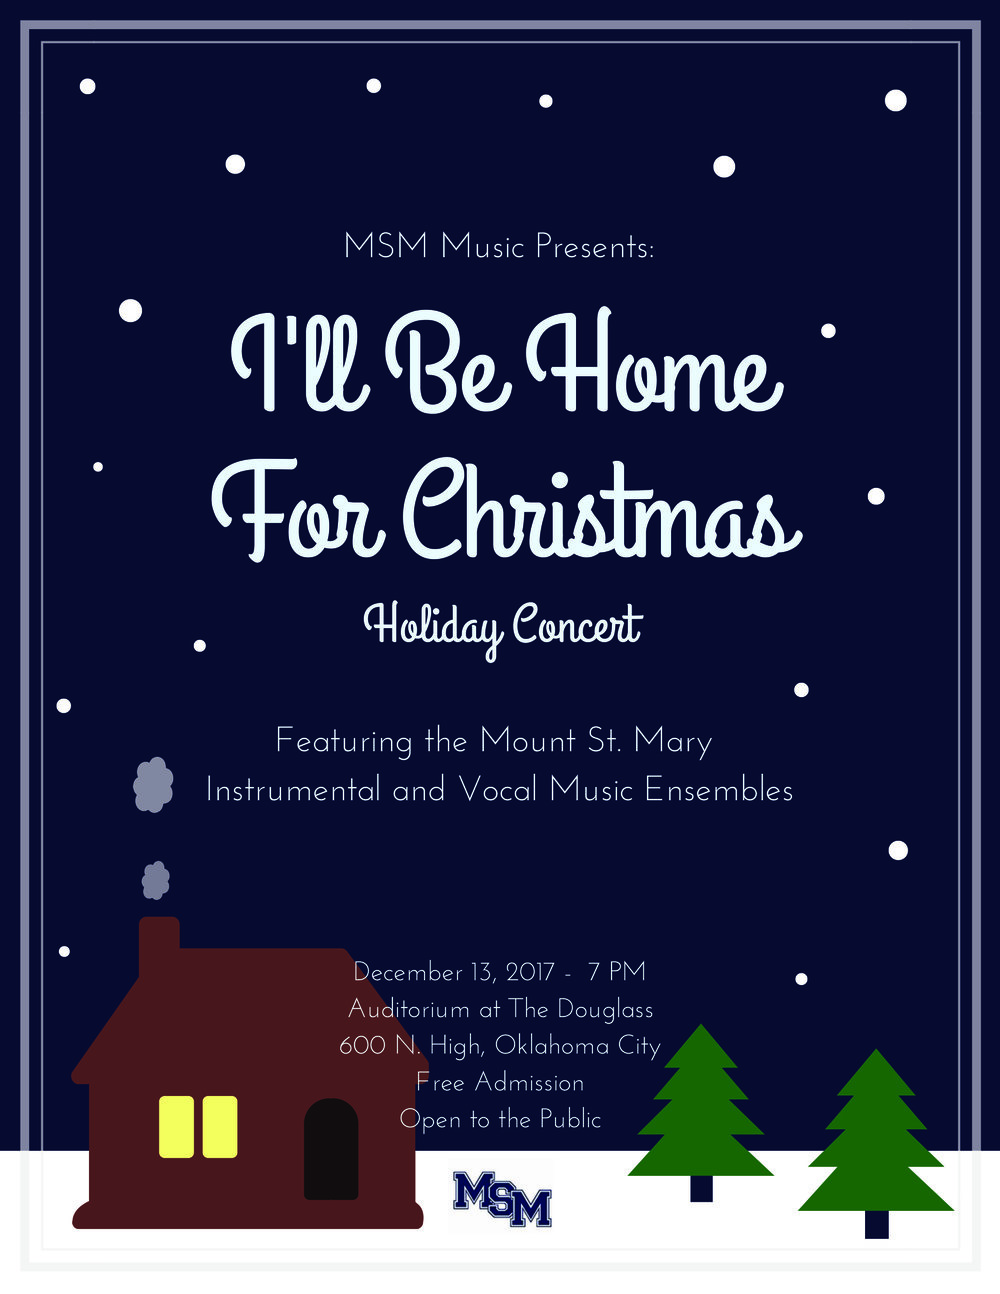 I'll Be Home For Christmas Holiday Concert - Free Admission - Dec. 13th, 7 pmMSM Music presents the Mount St. Mary Instrumental and Vocal Ensembles for a Holiday Concert, December 13, 2017 at 7 pm in the newly renovated Douglass at Page Woodson Auditorium.